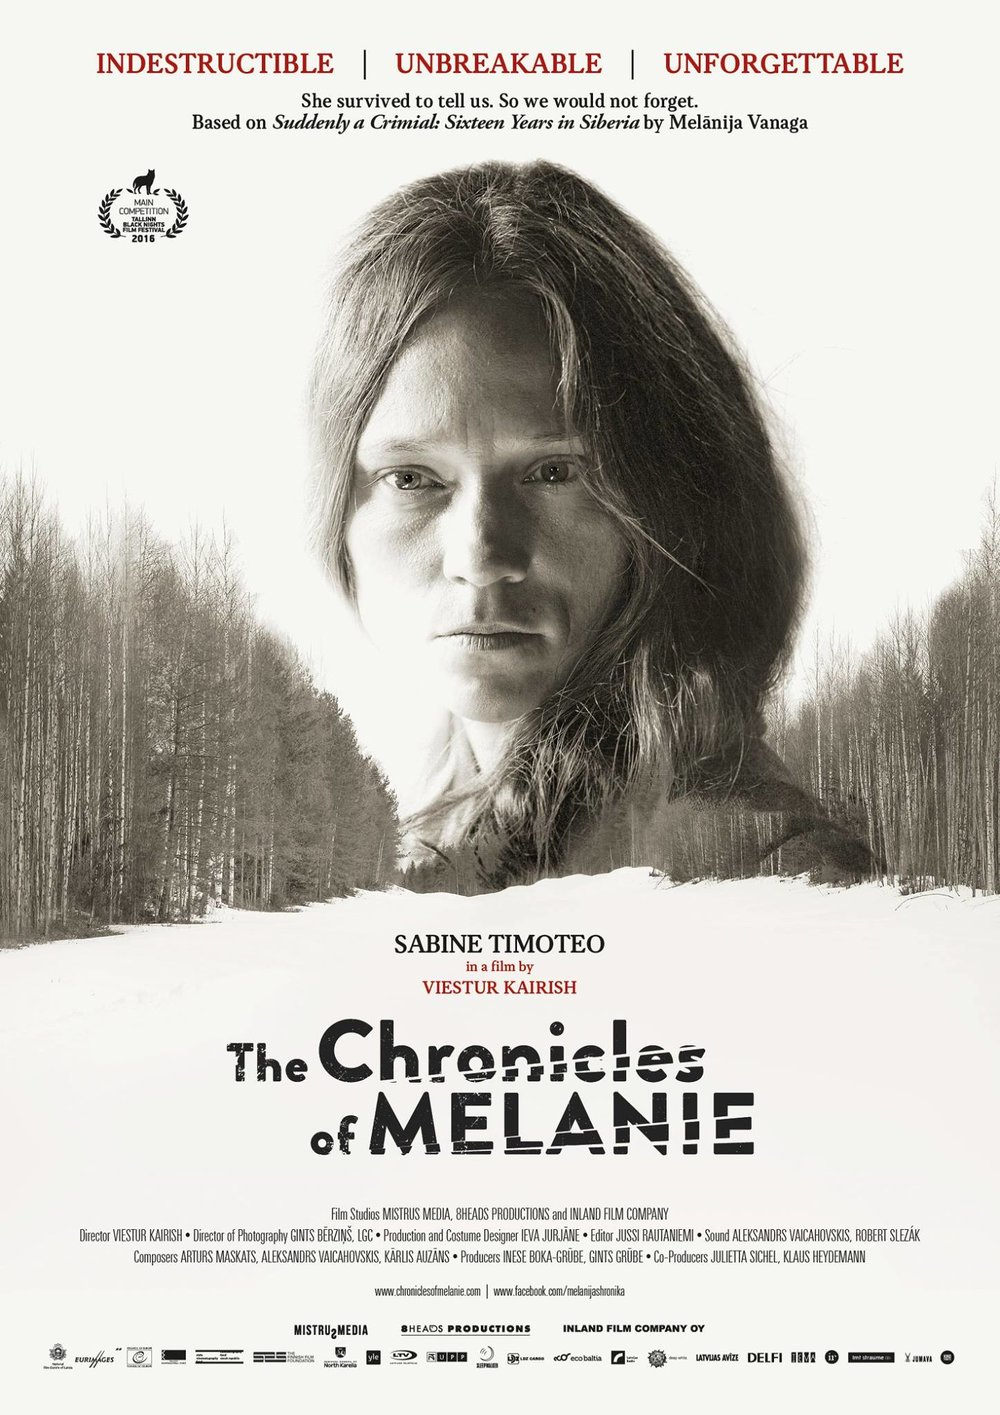 Chronicles of Melanie dir. Viesturs Kairiss Mistrus media, Inland Film Company / 2016